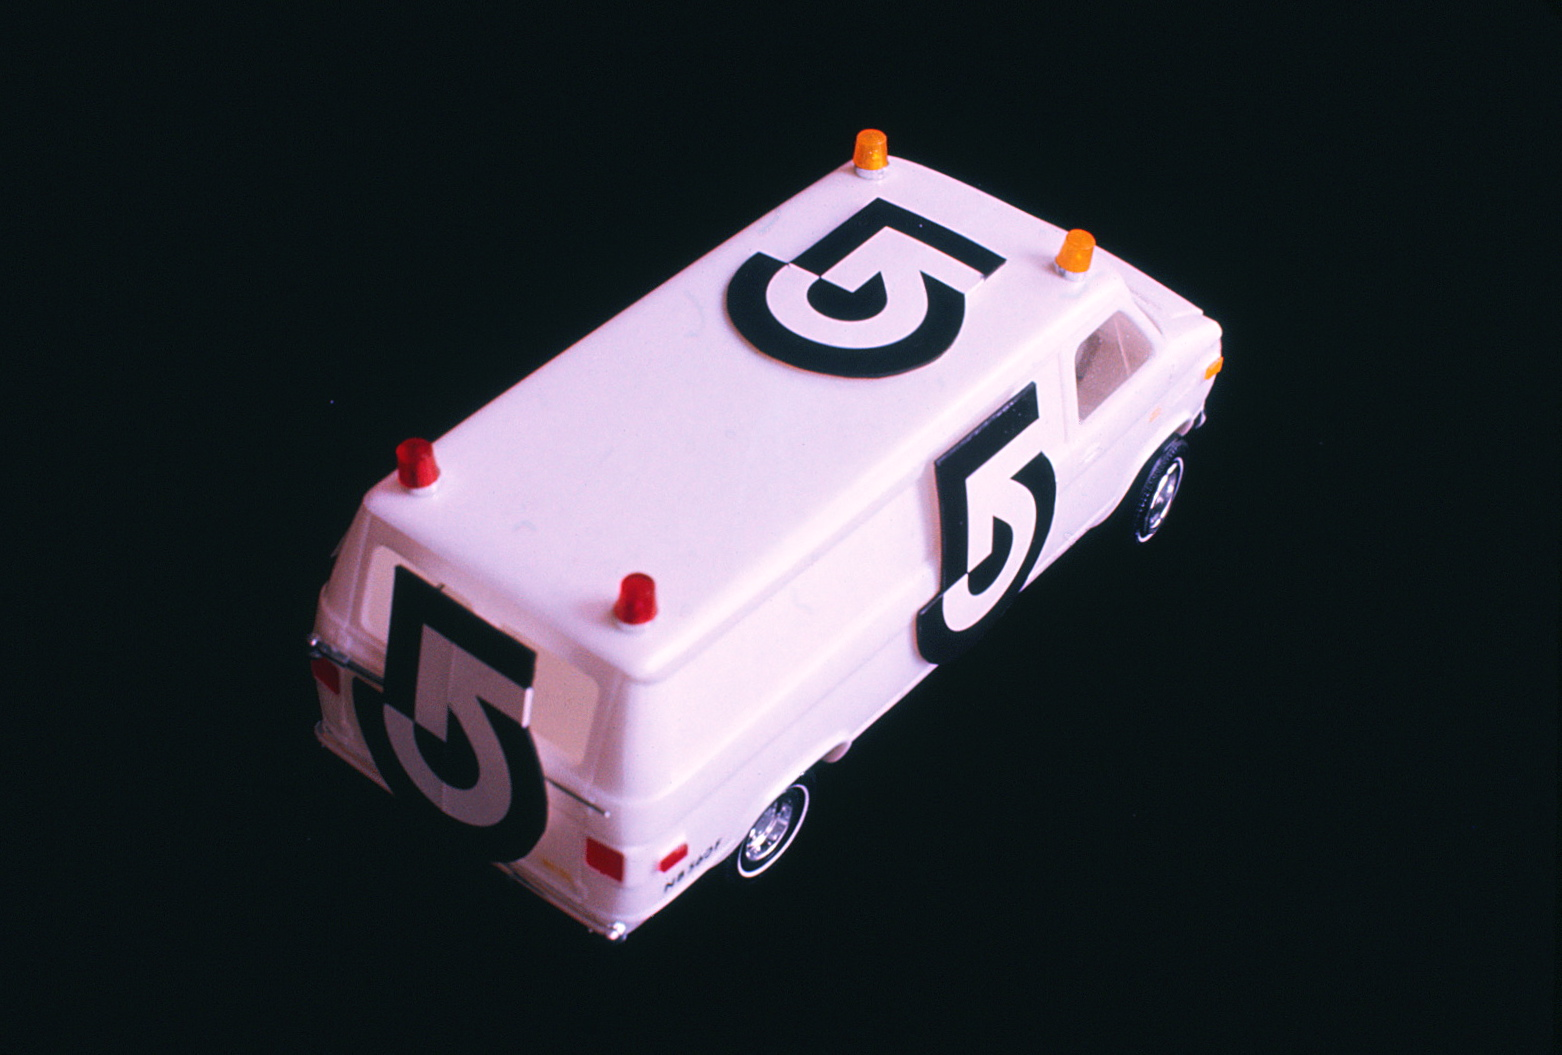 Model of van with logo on sides, back and roof